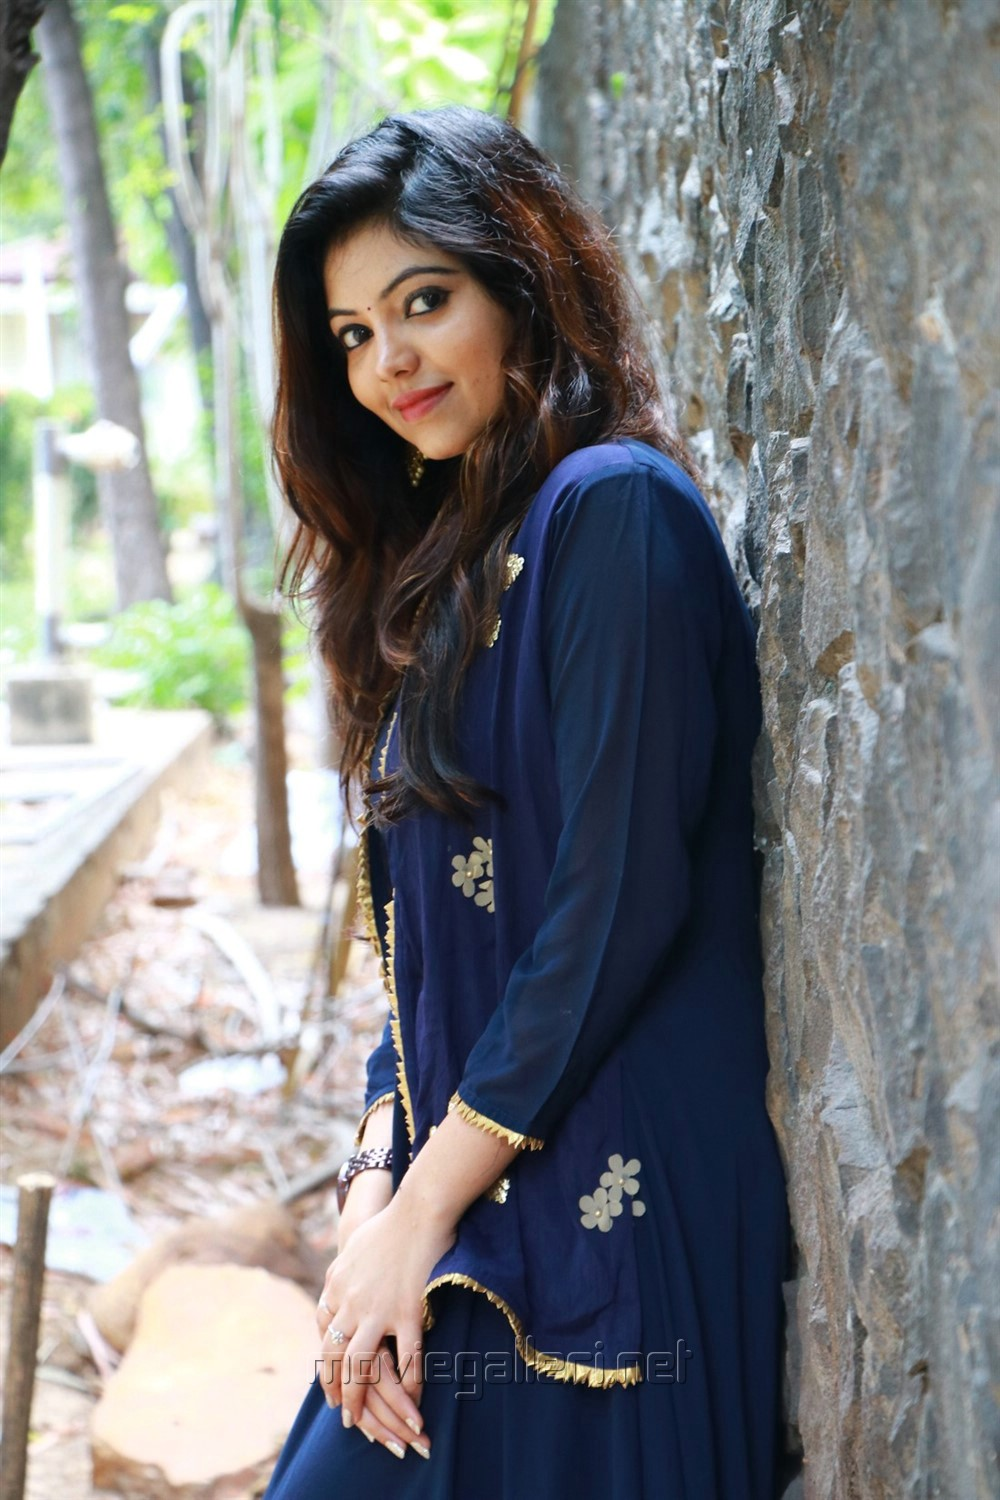 Actress Athulya Ravi in Dark Blue Dress Images